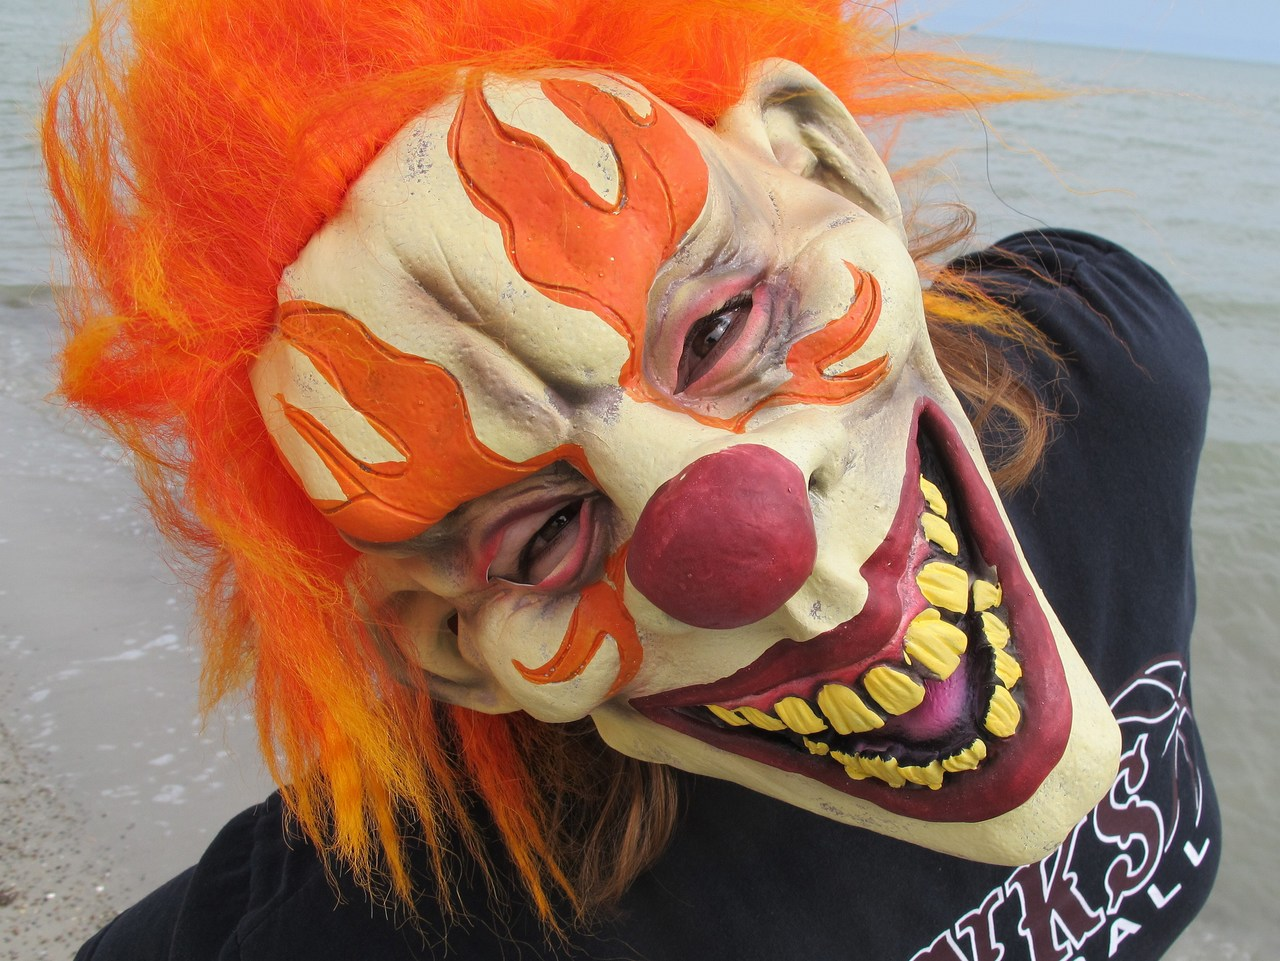 The Killer Clown Craze Creeps Into Finland